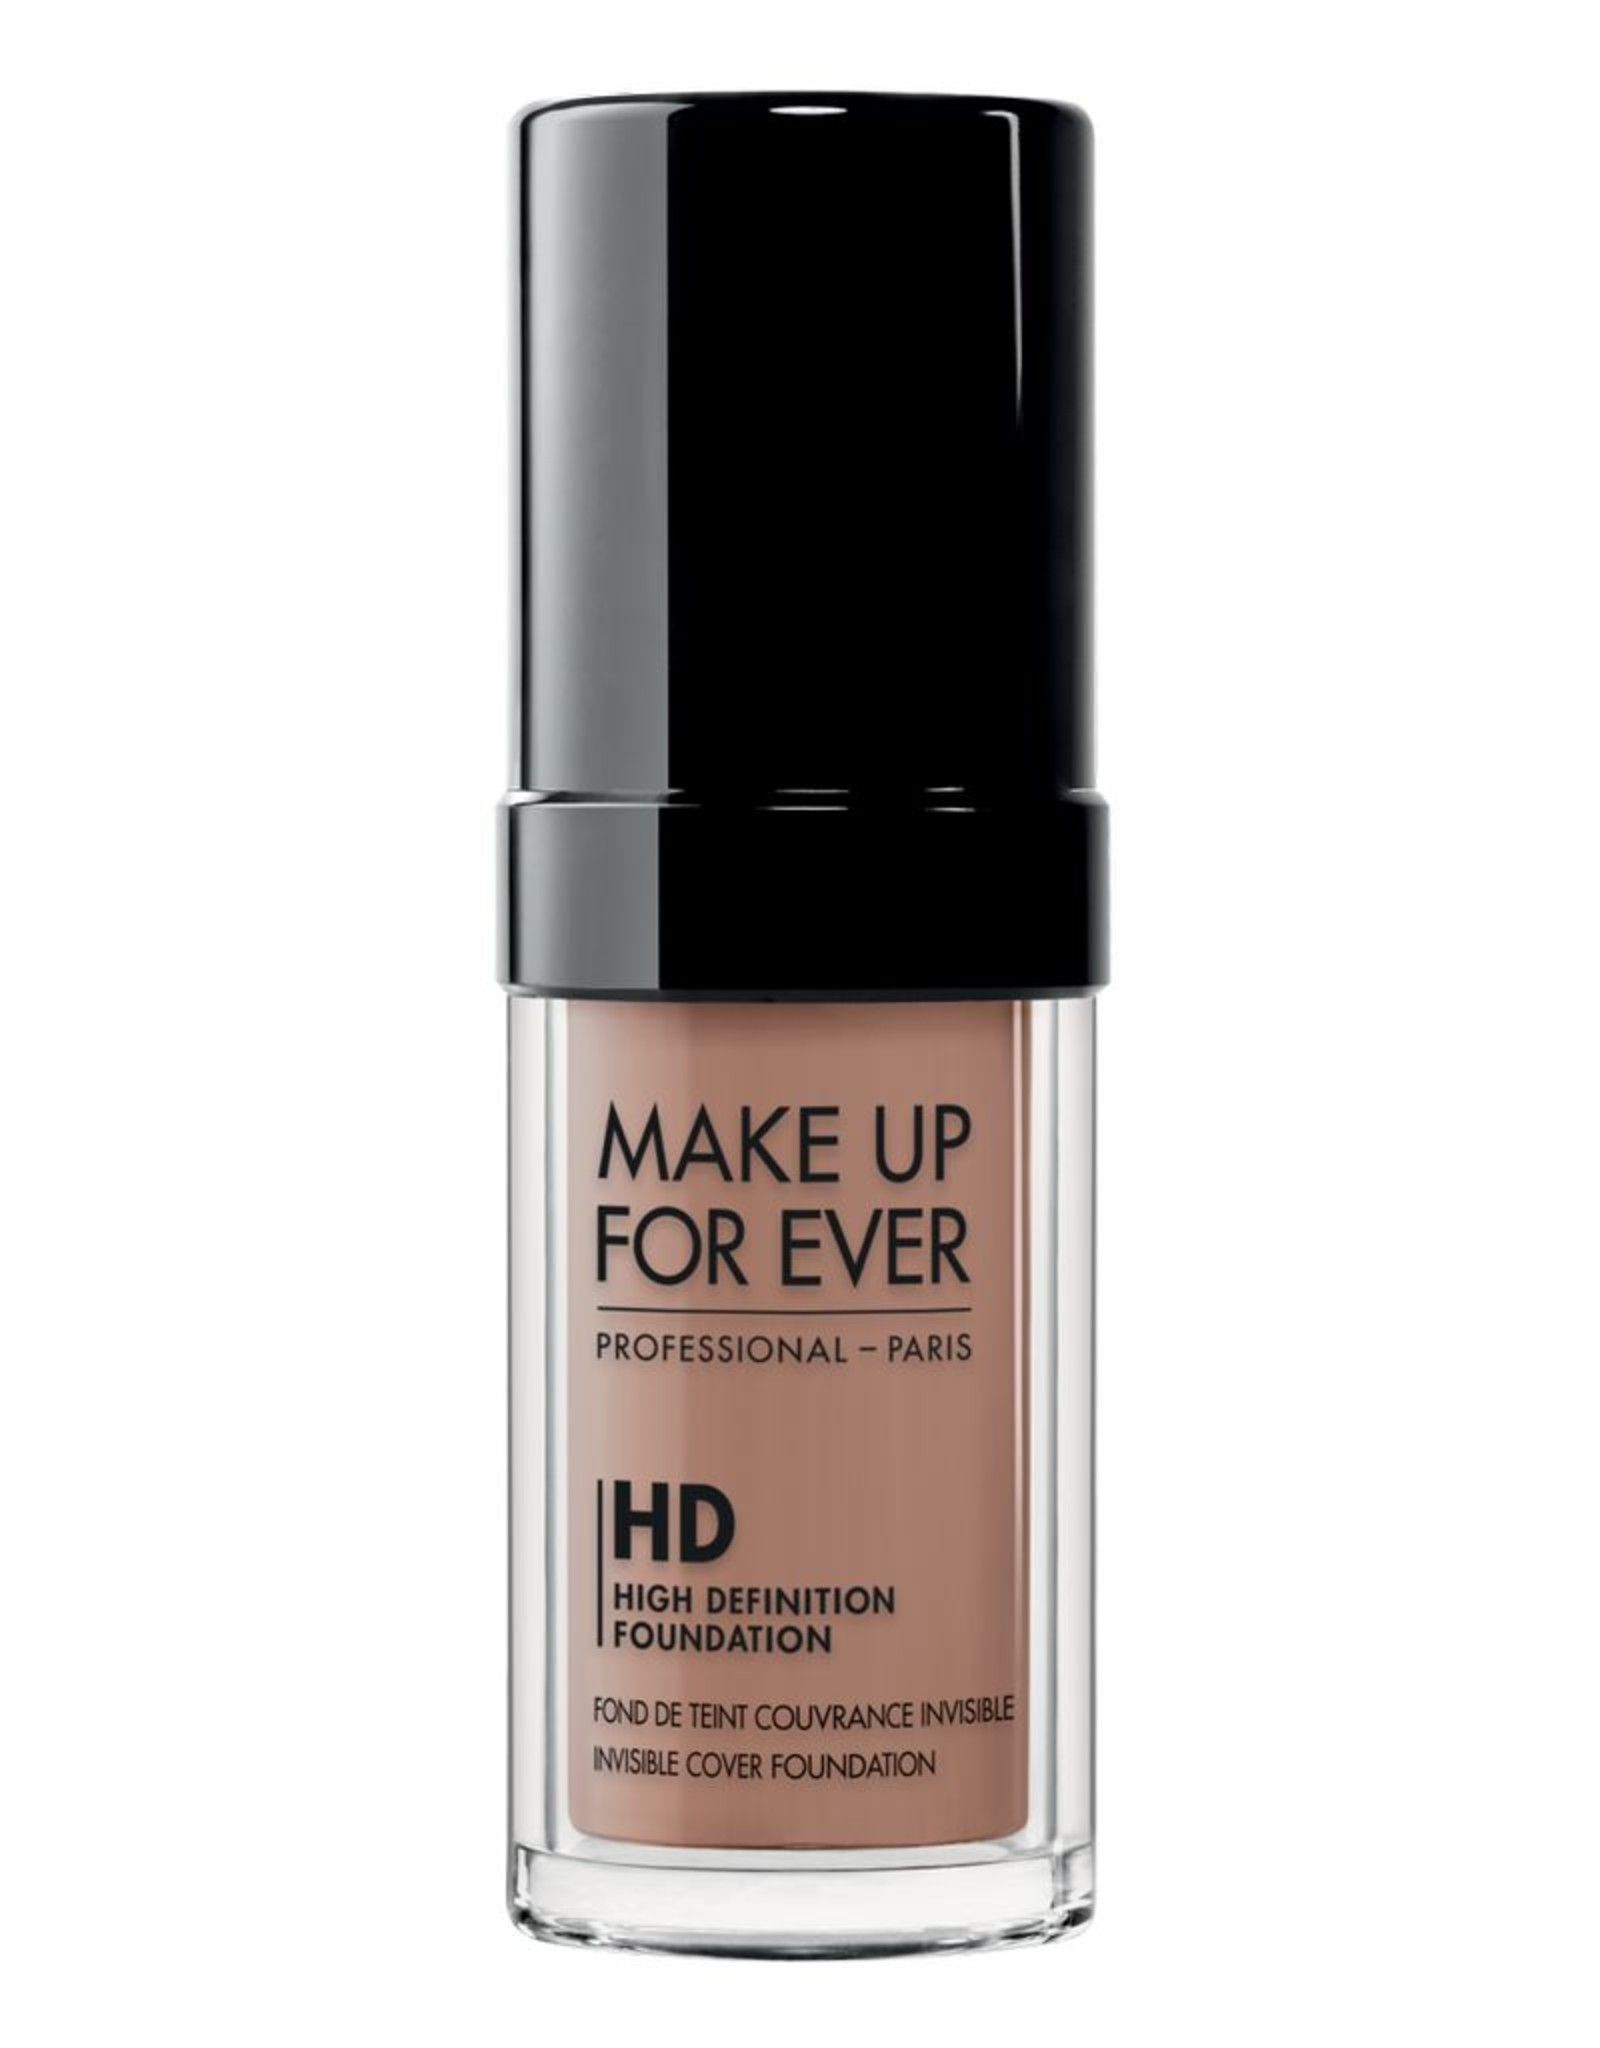 MUFE FOND DE TEINT HD 30ML (invisible) N150 beige rose / pink beige